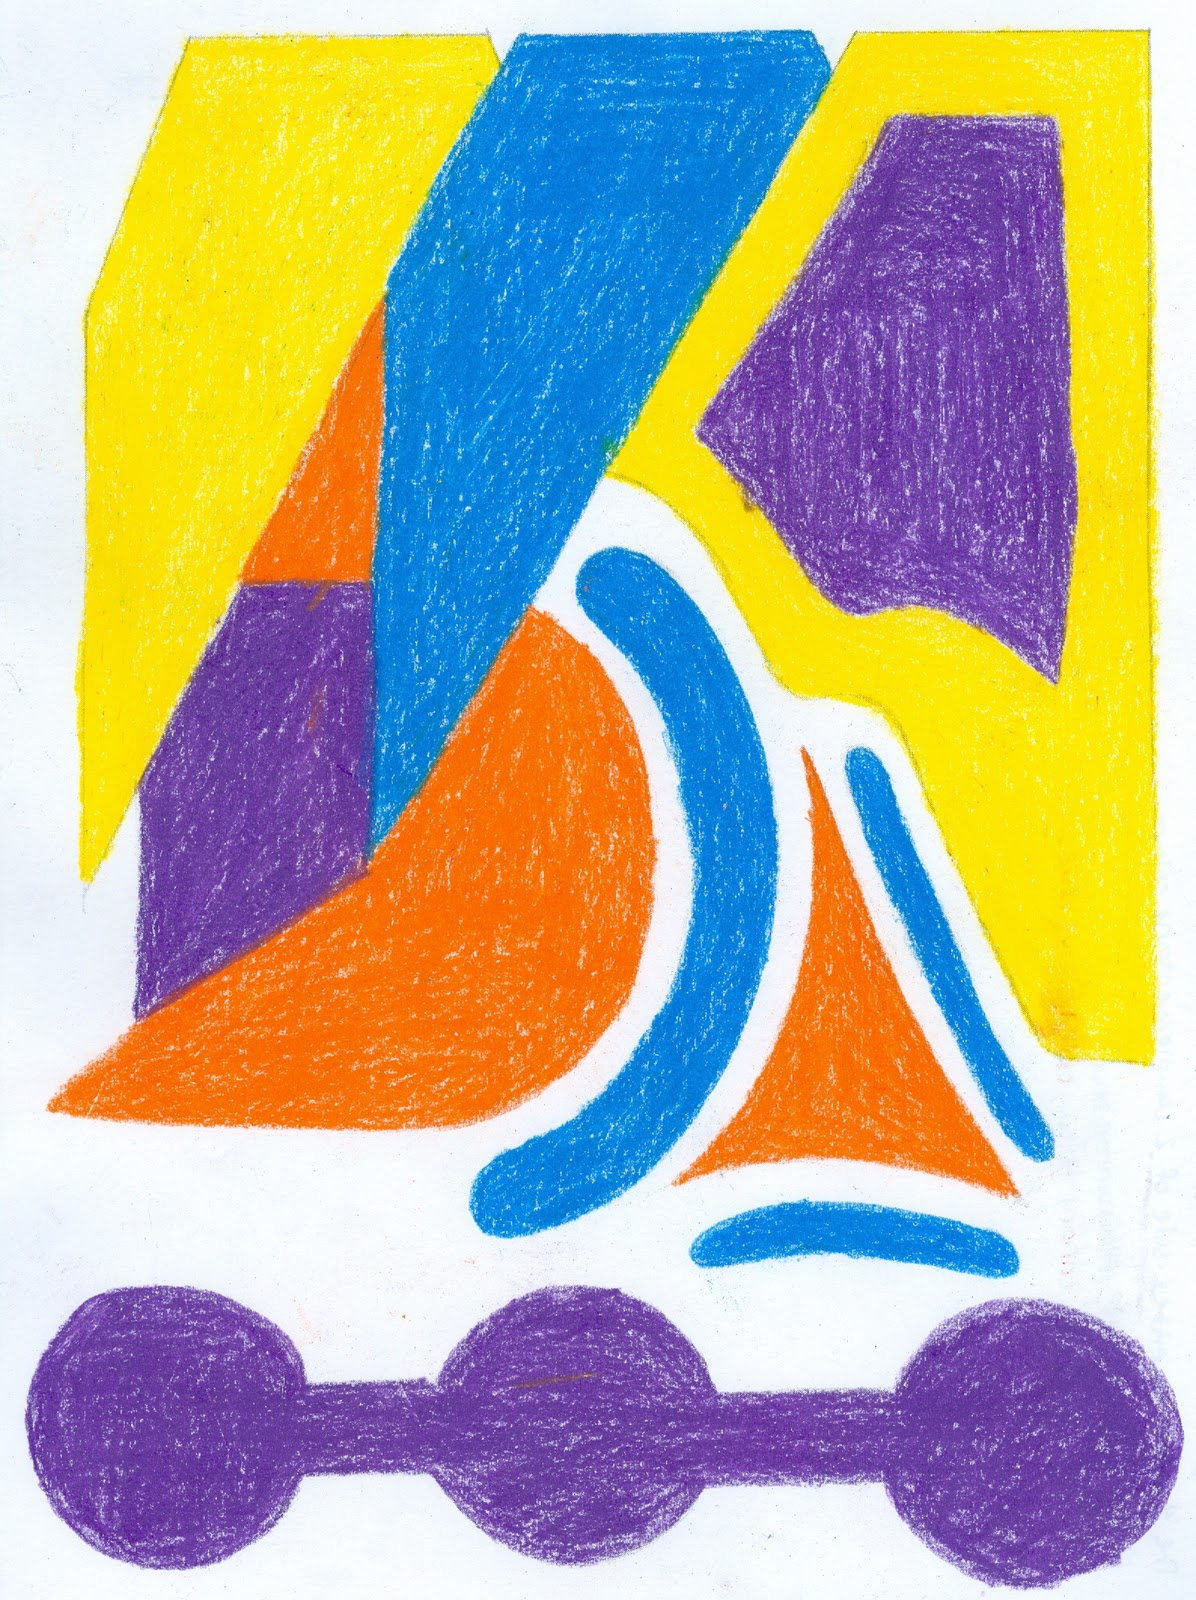 Rossybell's Art Blog: Cool Color Combinations - 12/23/11.